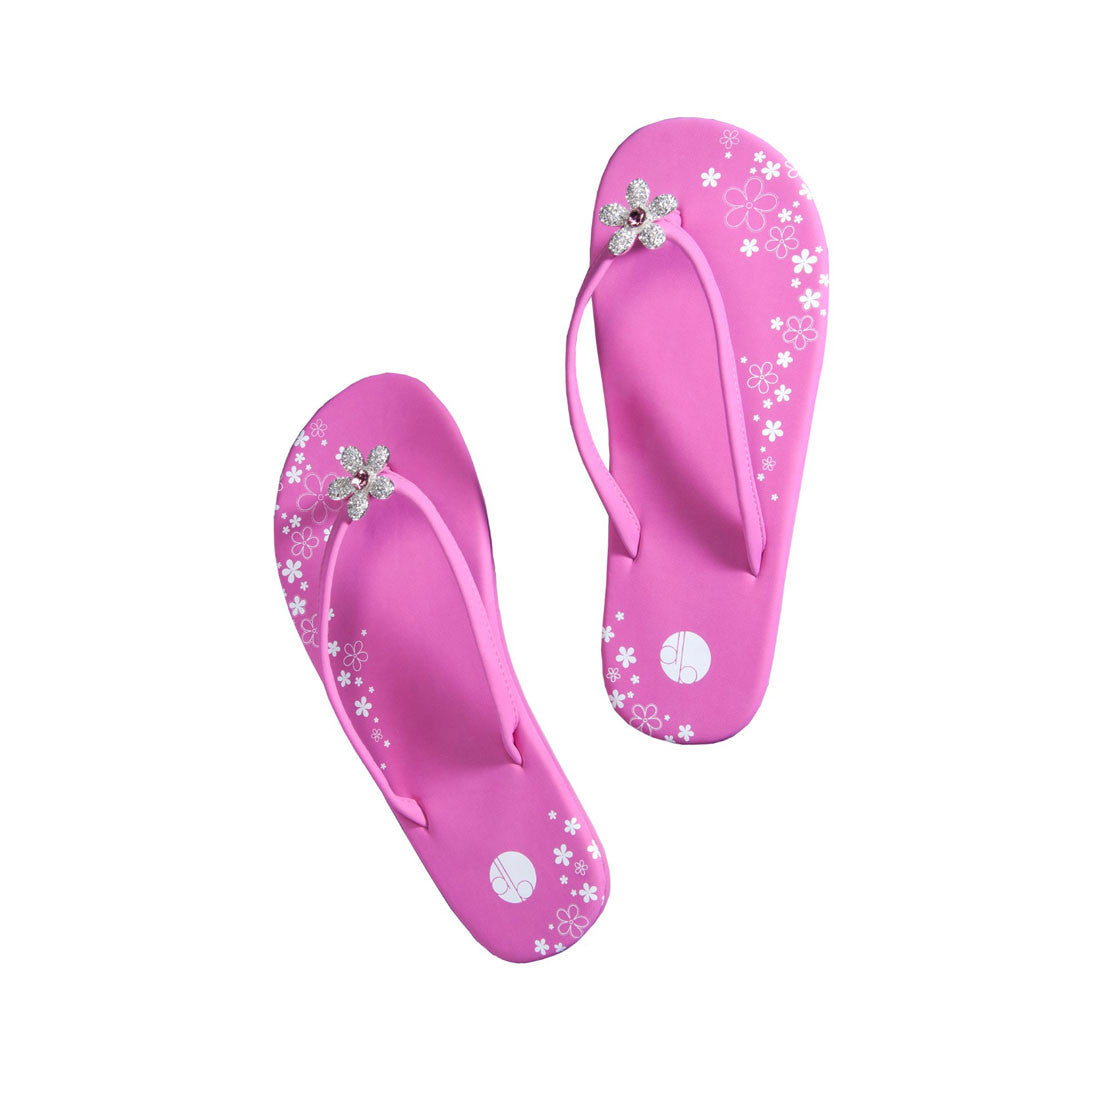 Pink Pave Flower Flat Flip Flops Girl Two Doors Down